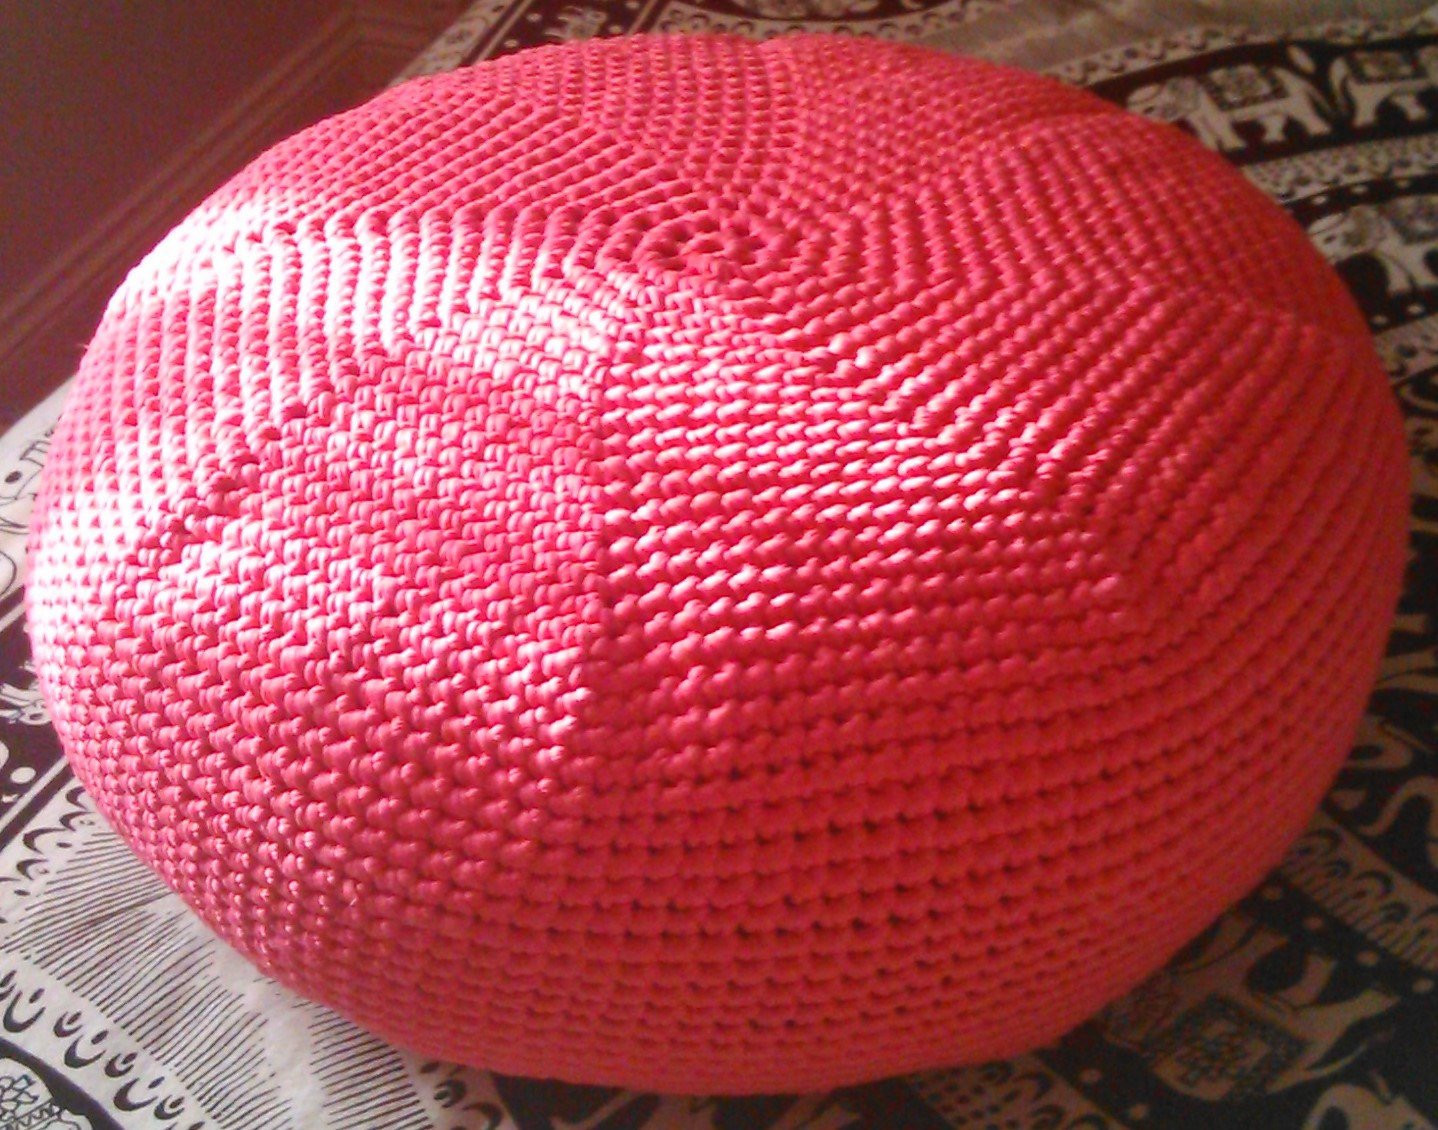 Crochet Ottoman Awesome Knitted Crochet Pouf Pouffe Pink Ottoman Footstool In Deep Hot Of Incredible 42 Ideas Crochet Ottoman